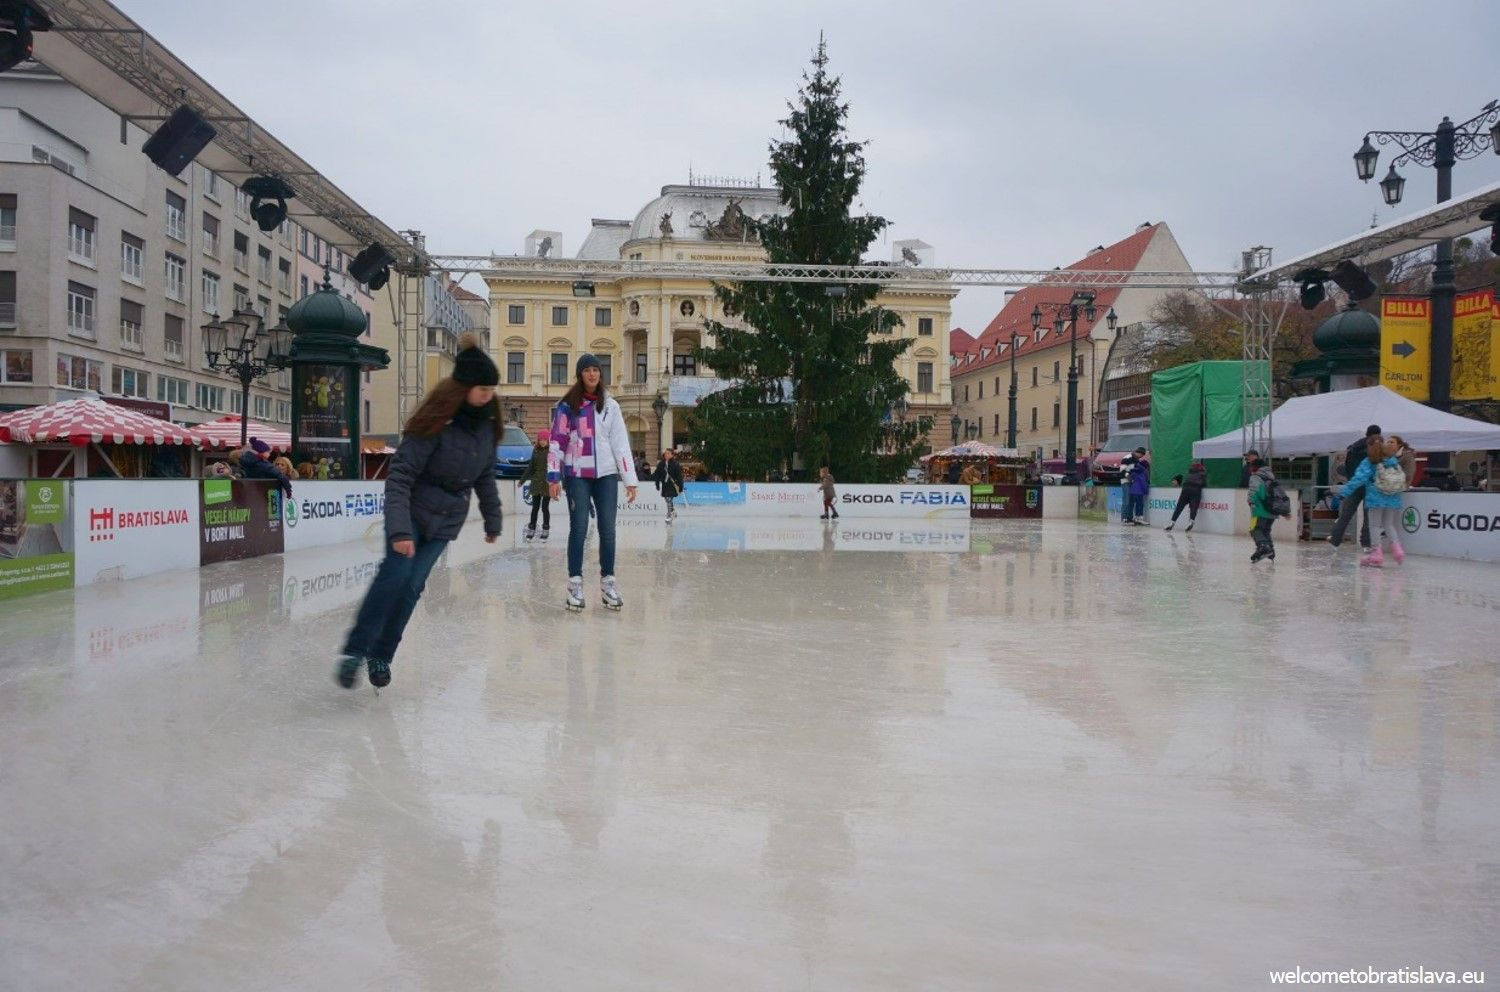 Ice rink at the Hviezdoslav's square